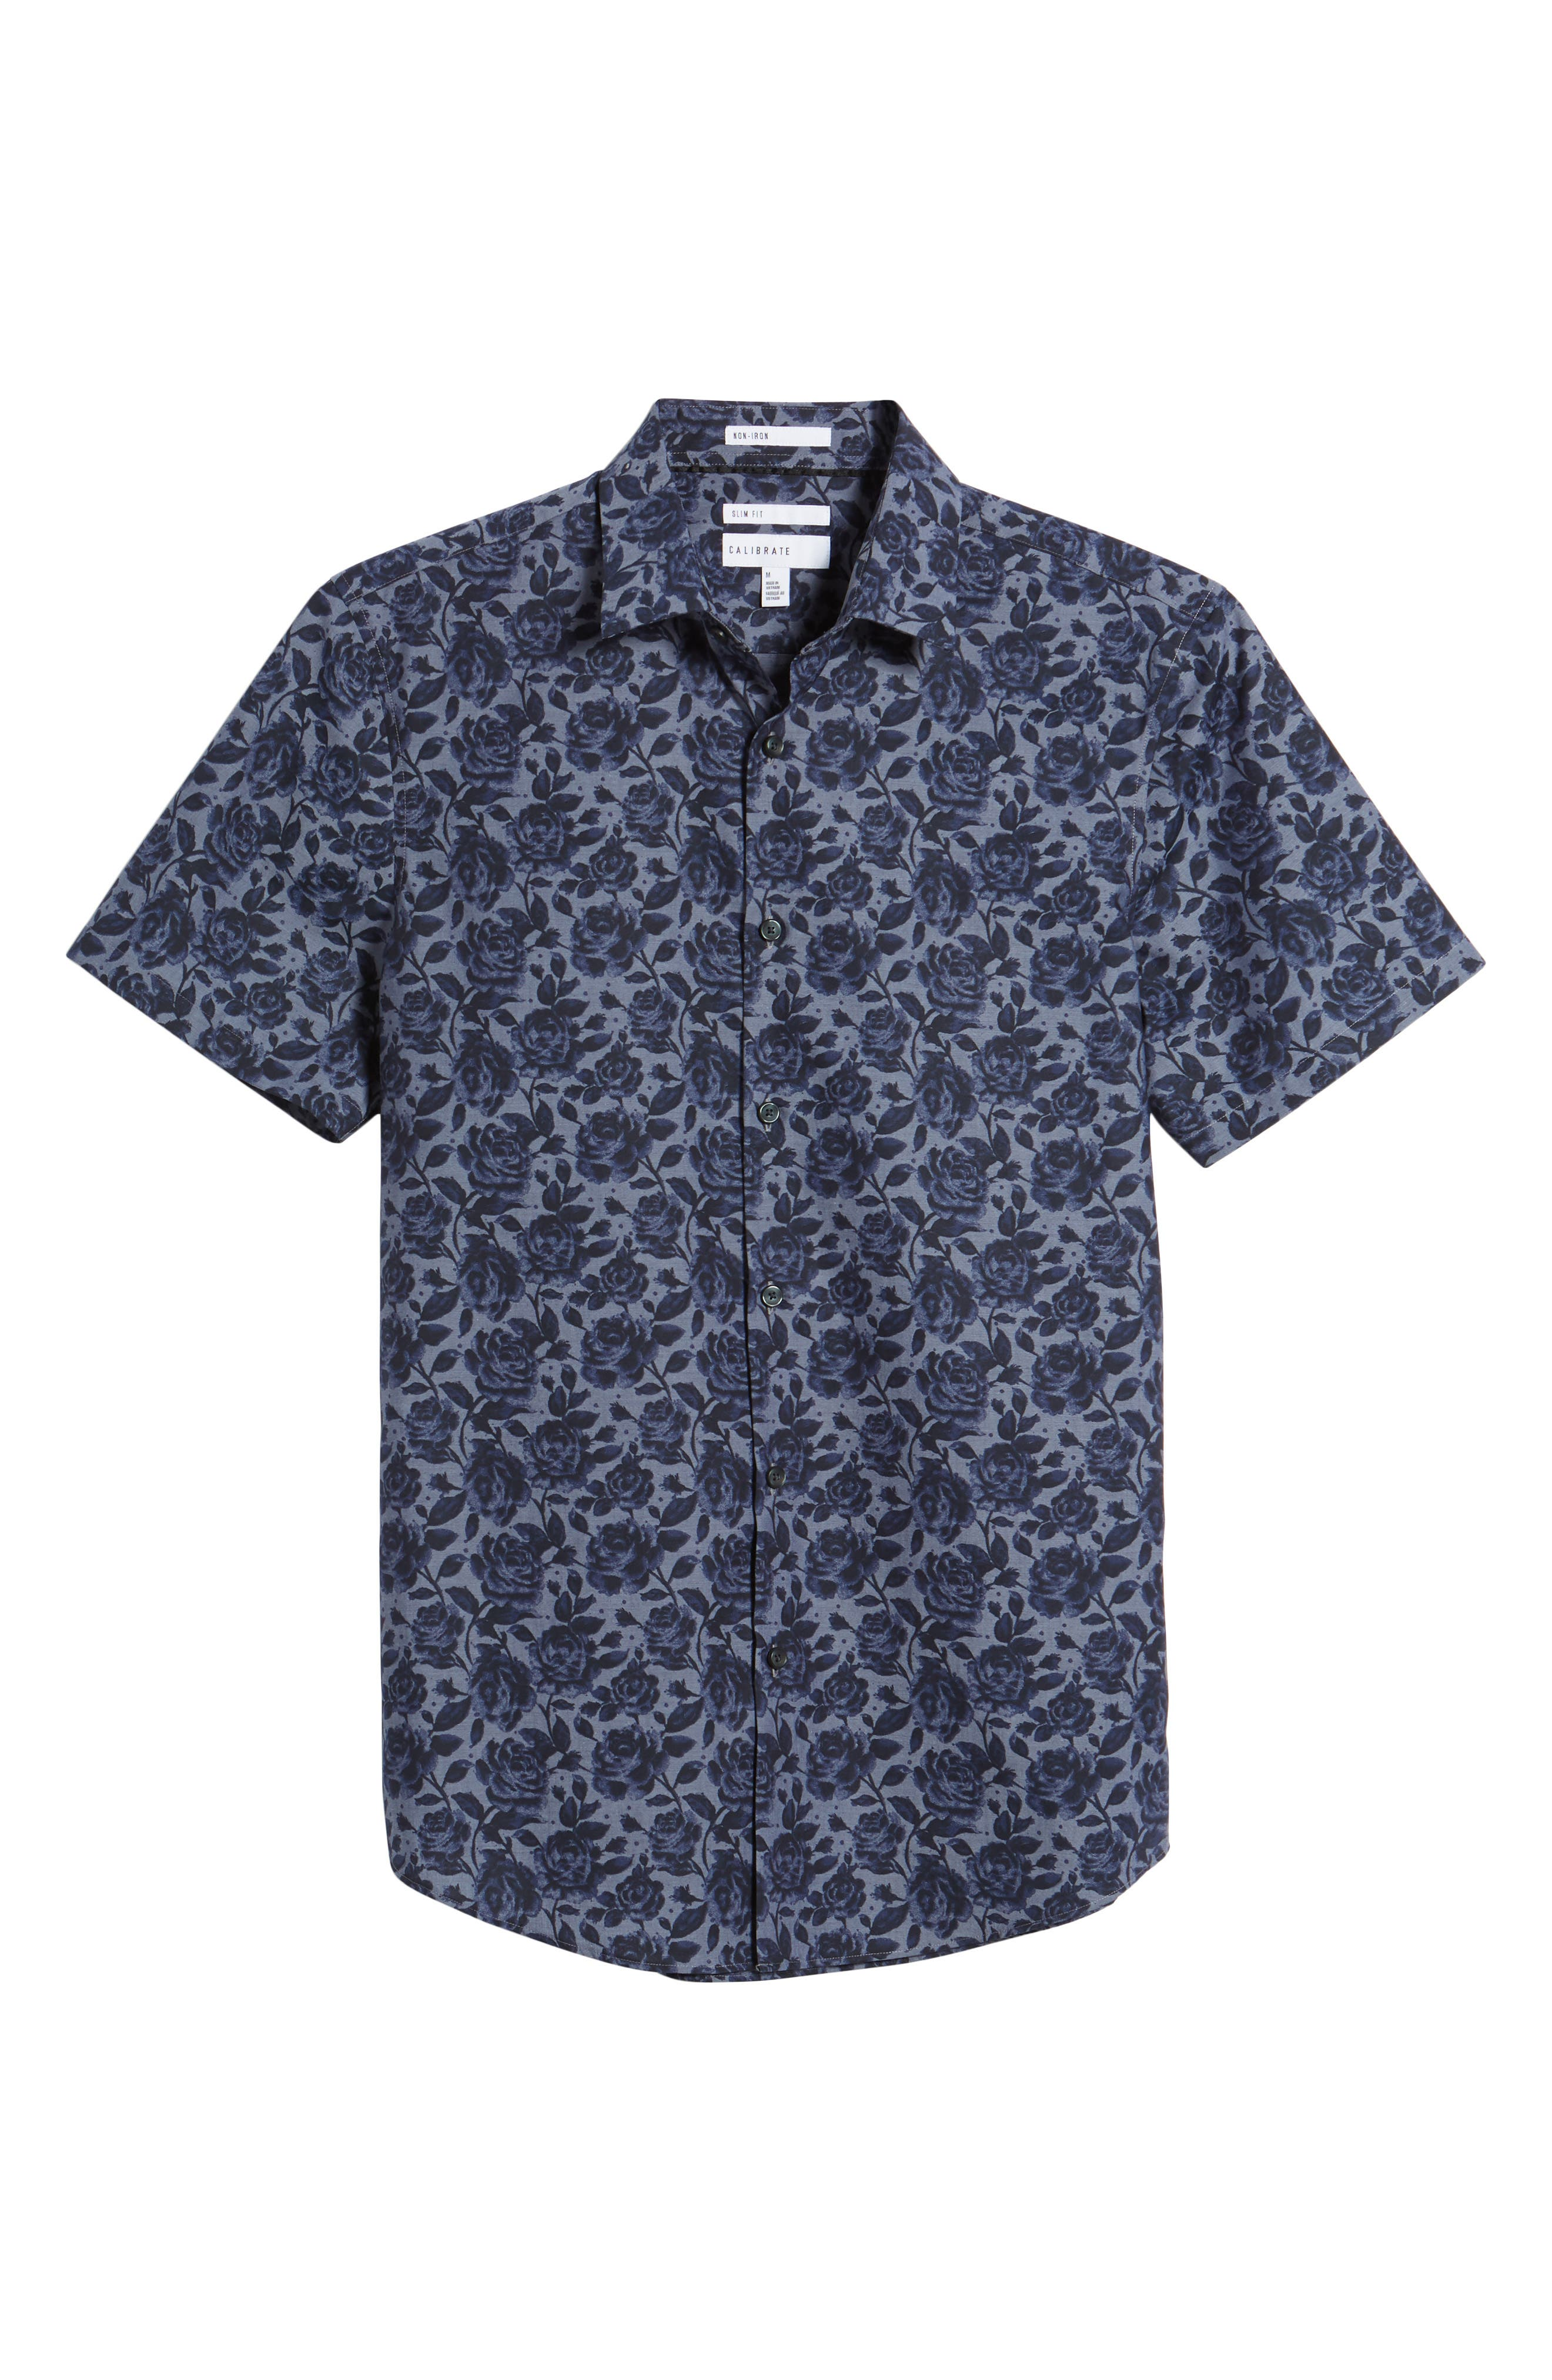 Floral Print Sport Shirt,                             Alternate thumbnail 6, color,                             Navy Blue Chambray Floral